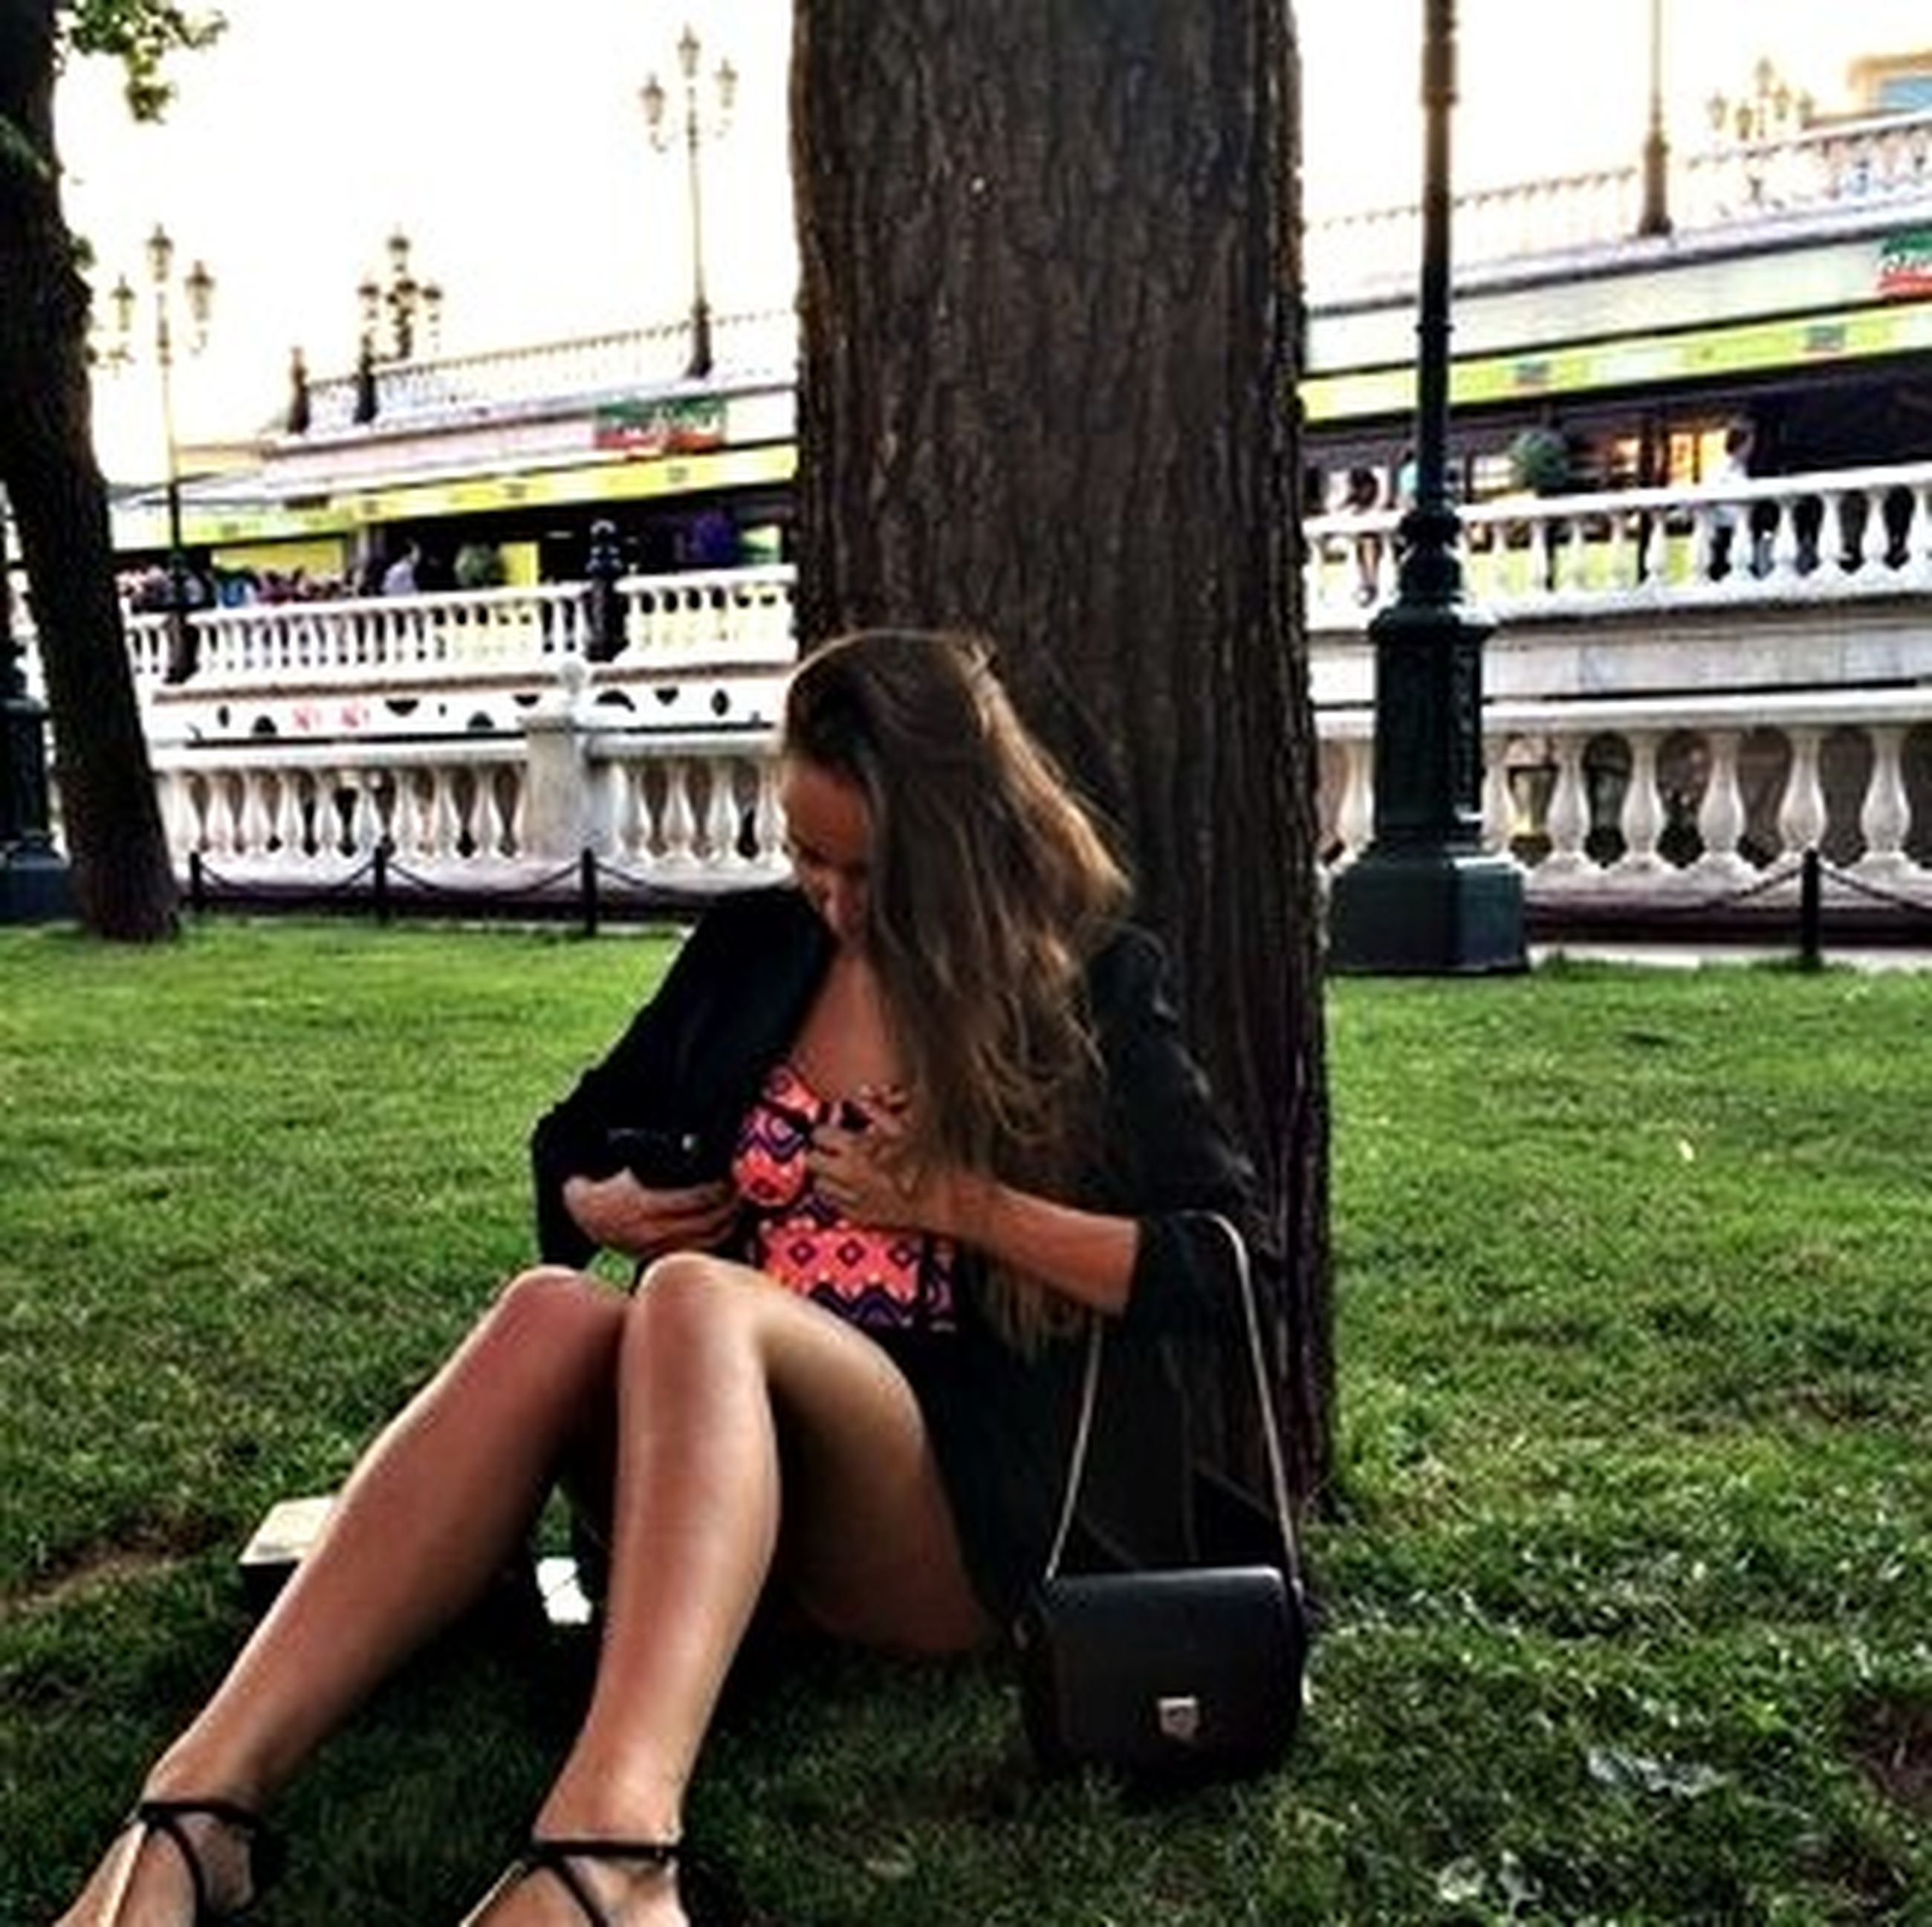 lifestyles, young adult, leisure activity, young women, casual clothing, person, sitting, grass, holding, side view, three quarter length, tree, long hair, communication, transportation, photography themes, wireless technology